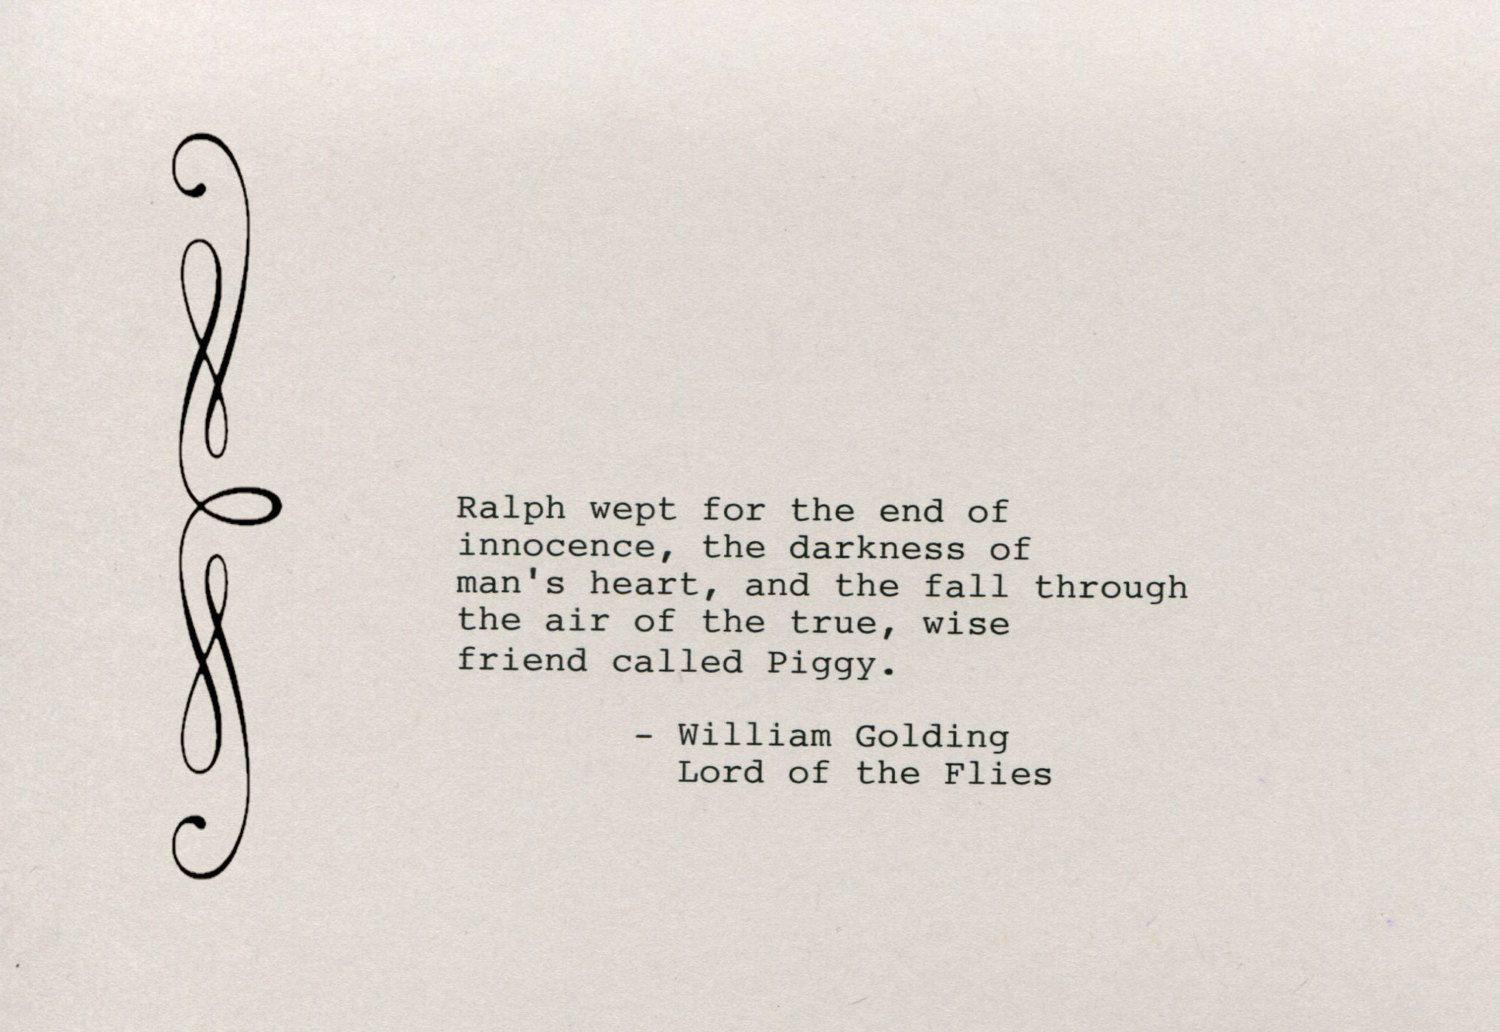 Lord Of The Flies Ralph Leadership Quotes  William Golding Quote Made on Typewriter Art Quote Wall